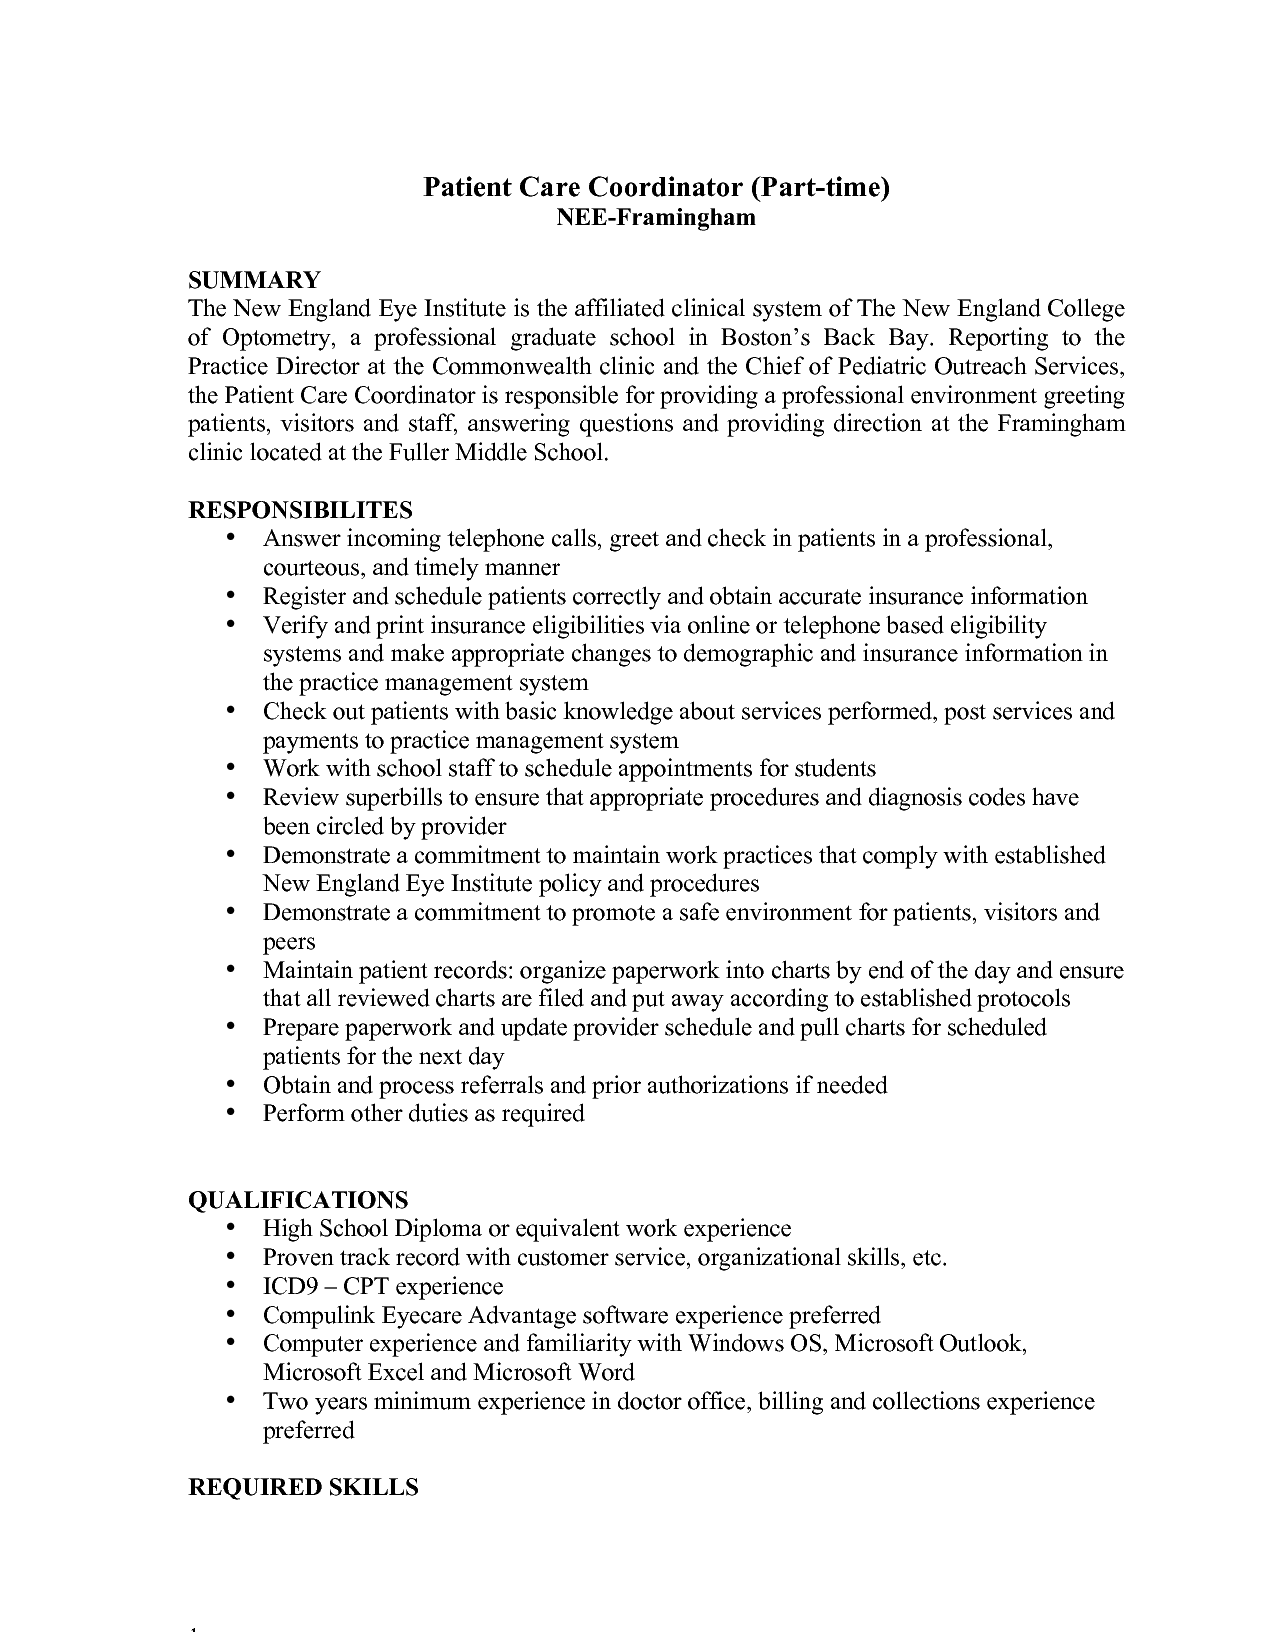 patient care coordinator resume summary and responsibilities - Staffing Coordinator Resume